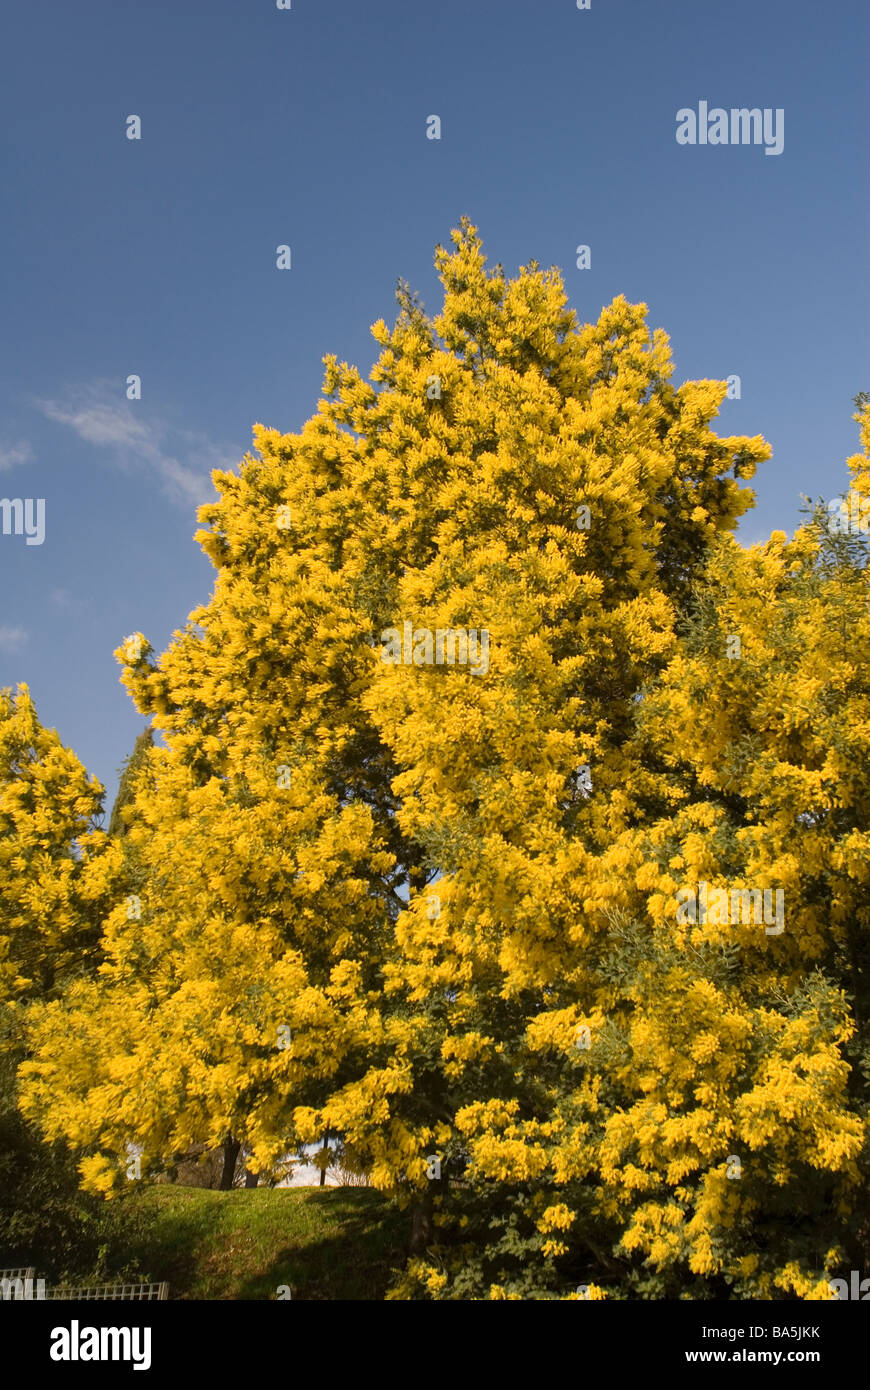 Silver Wattle, Acacia dealbata, mimosa, Fabaceae from Australia - Stock Image